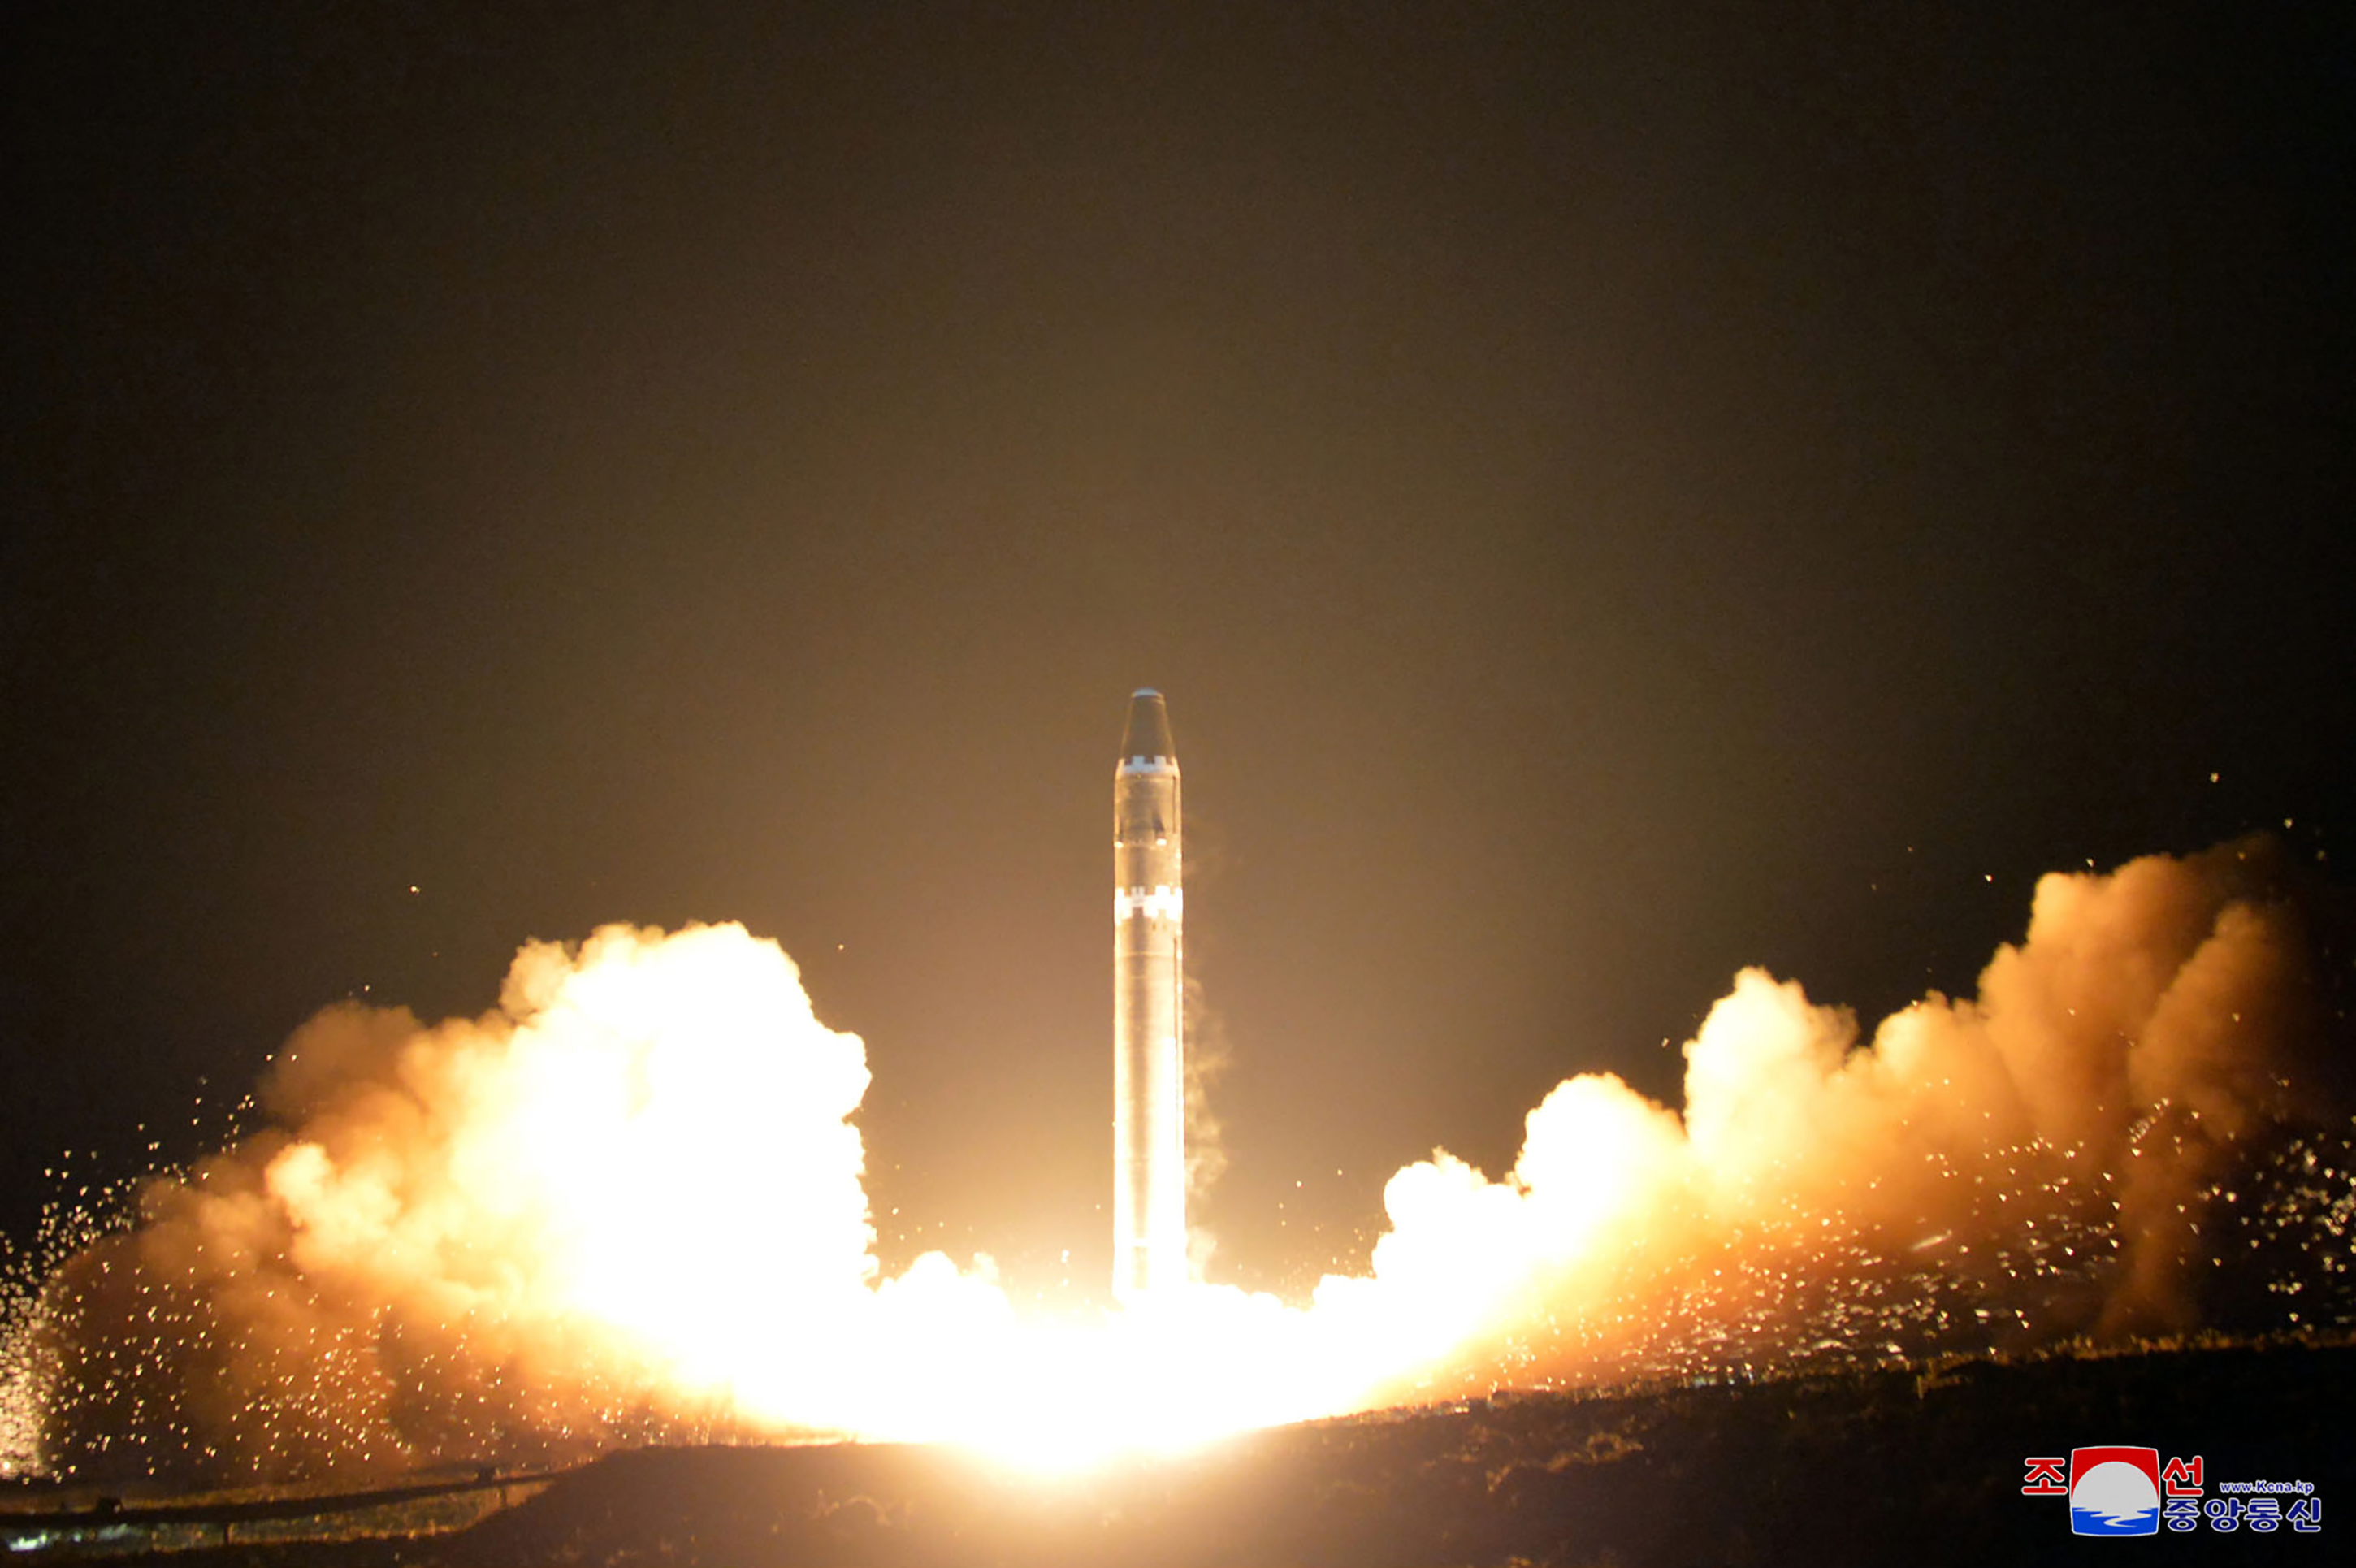 This photo released on November 30, 2017 by North Korea's official Korean Central News Agency (KCNA) shows launching of the Hwasong-15 missile.